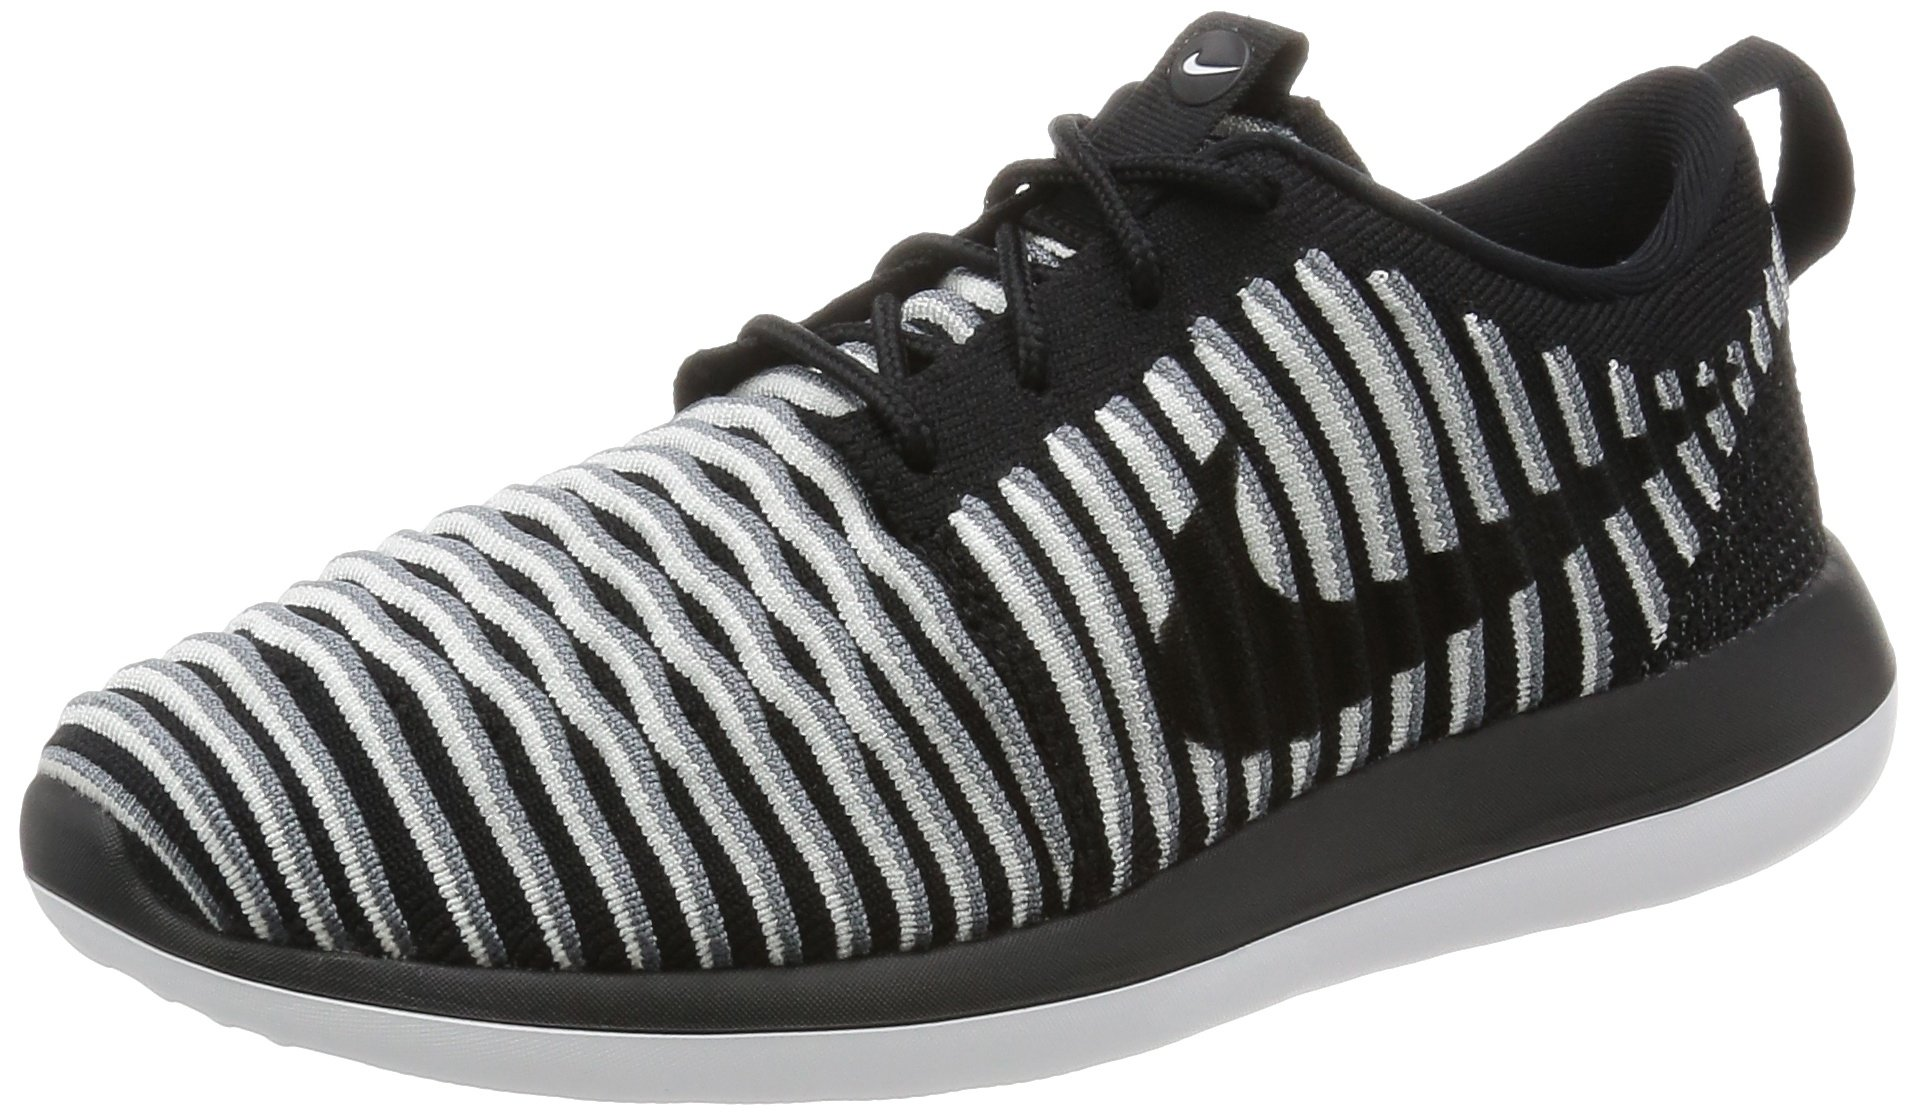 huge selection of c4720 c9b2c Galleon - Nike Women s Roshe Two Flyknit Black Textile Running Shoes 7.5